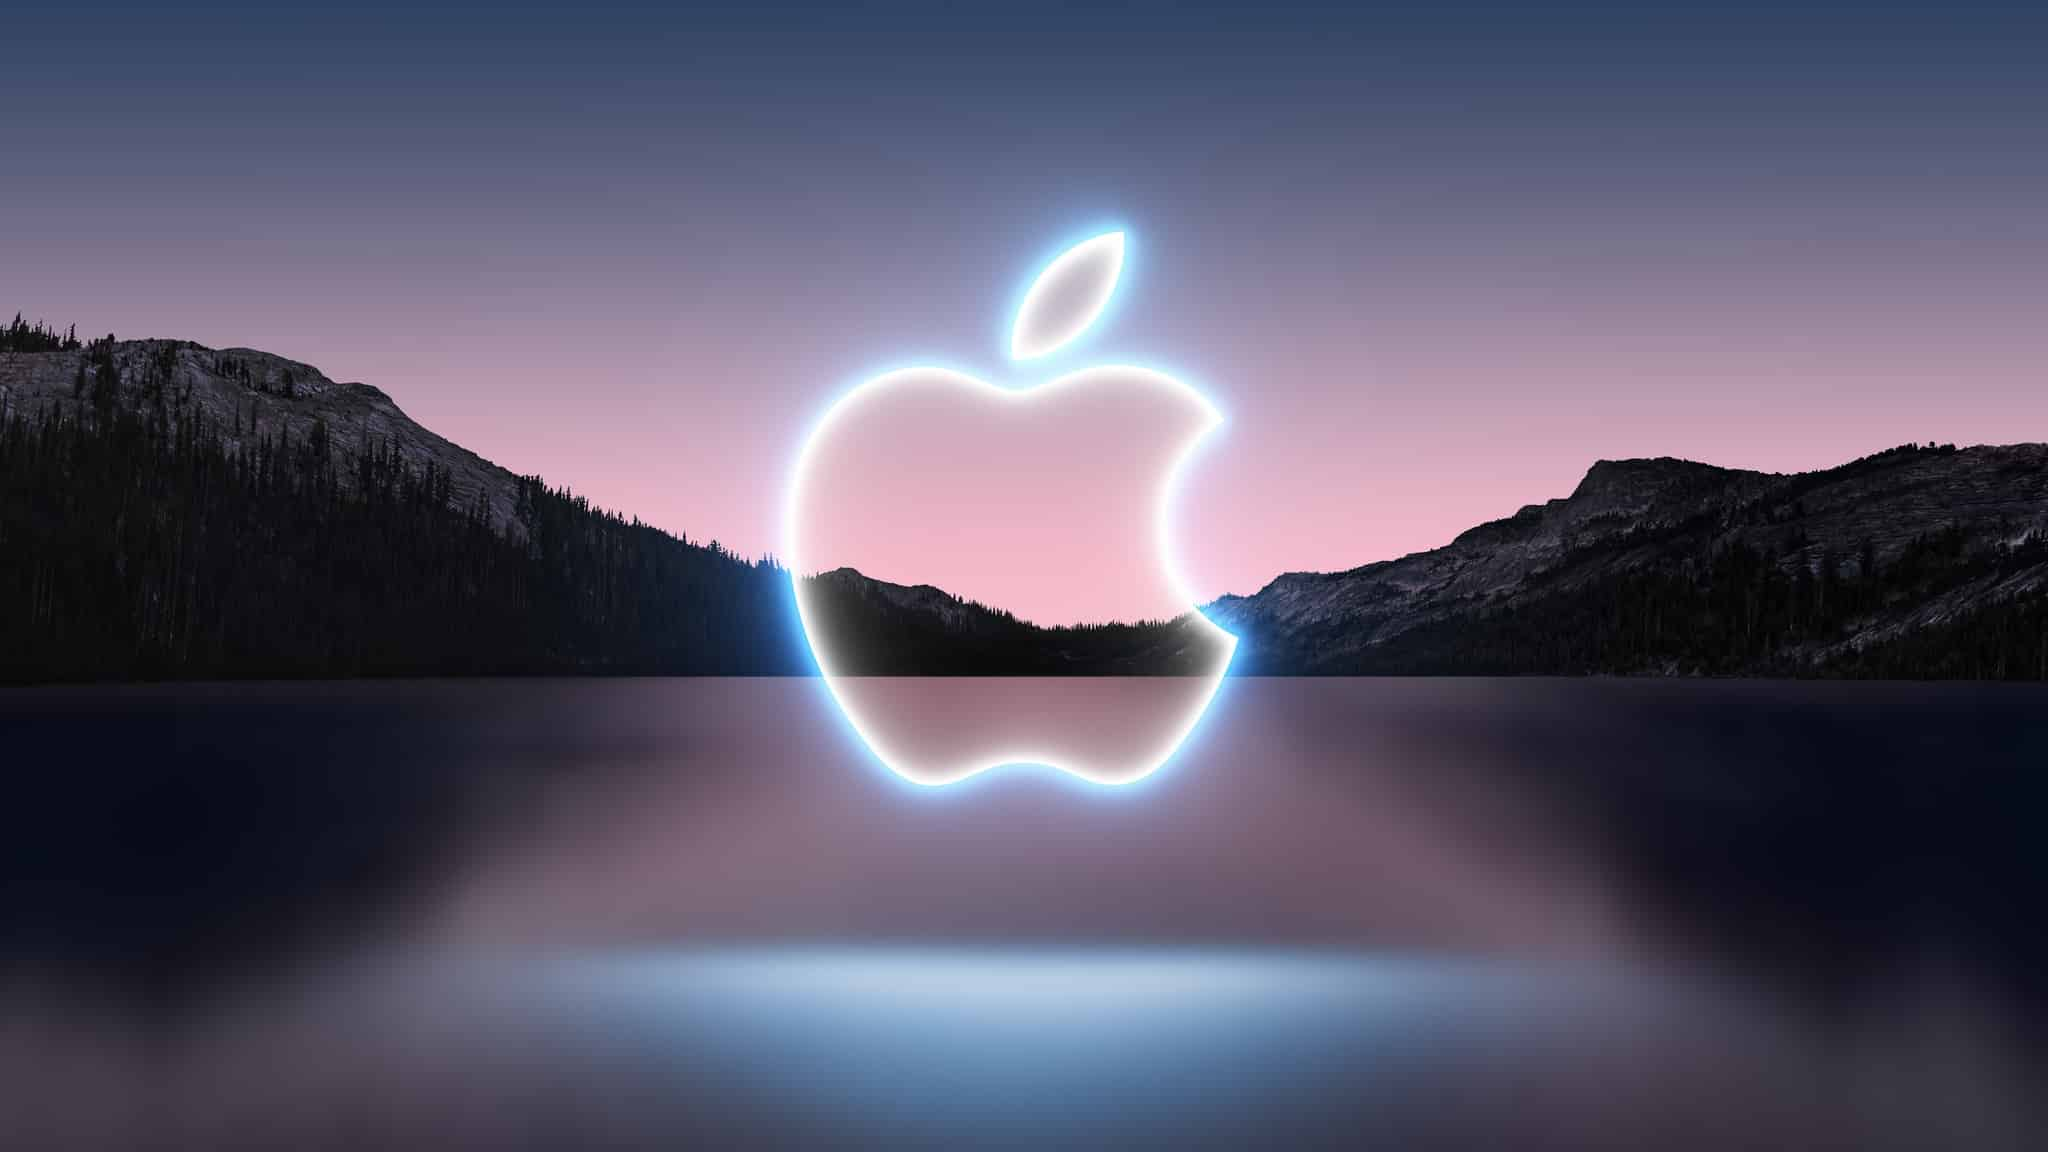 Apple to unveil iPhone 13 on September 14